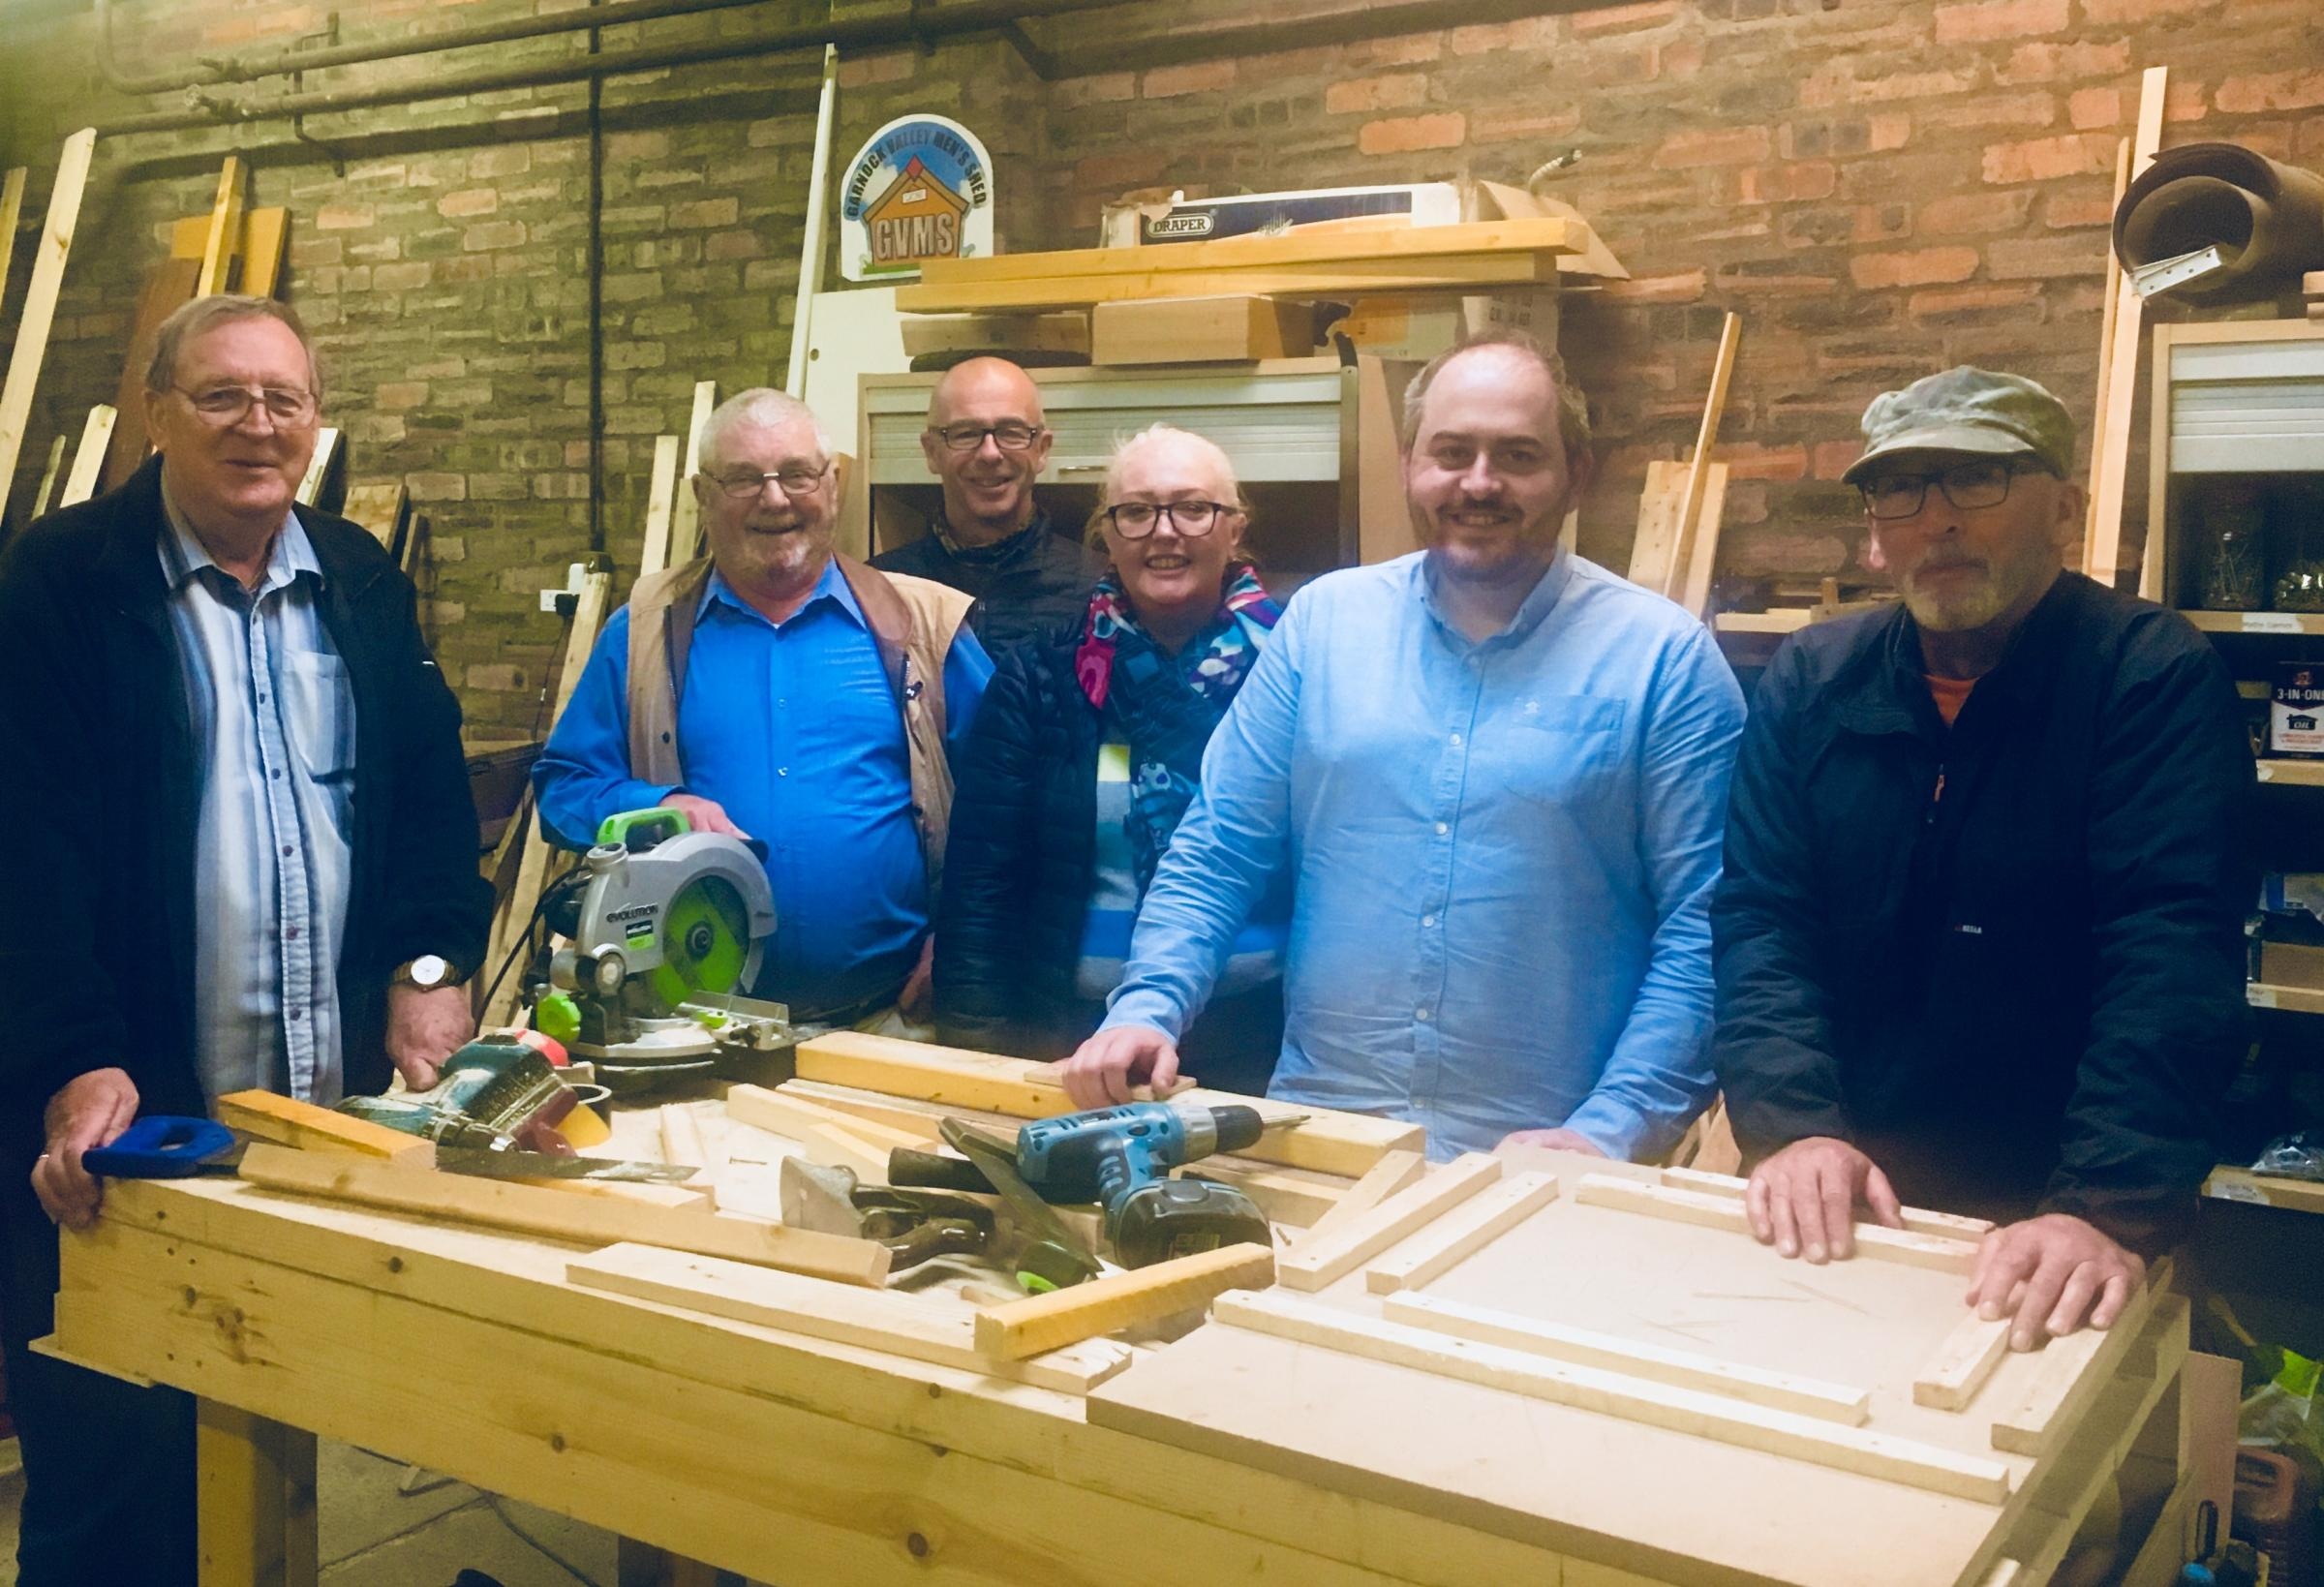 Funding boost for the Men's Shed in the Garnock Valley